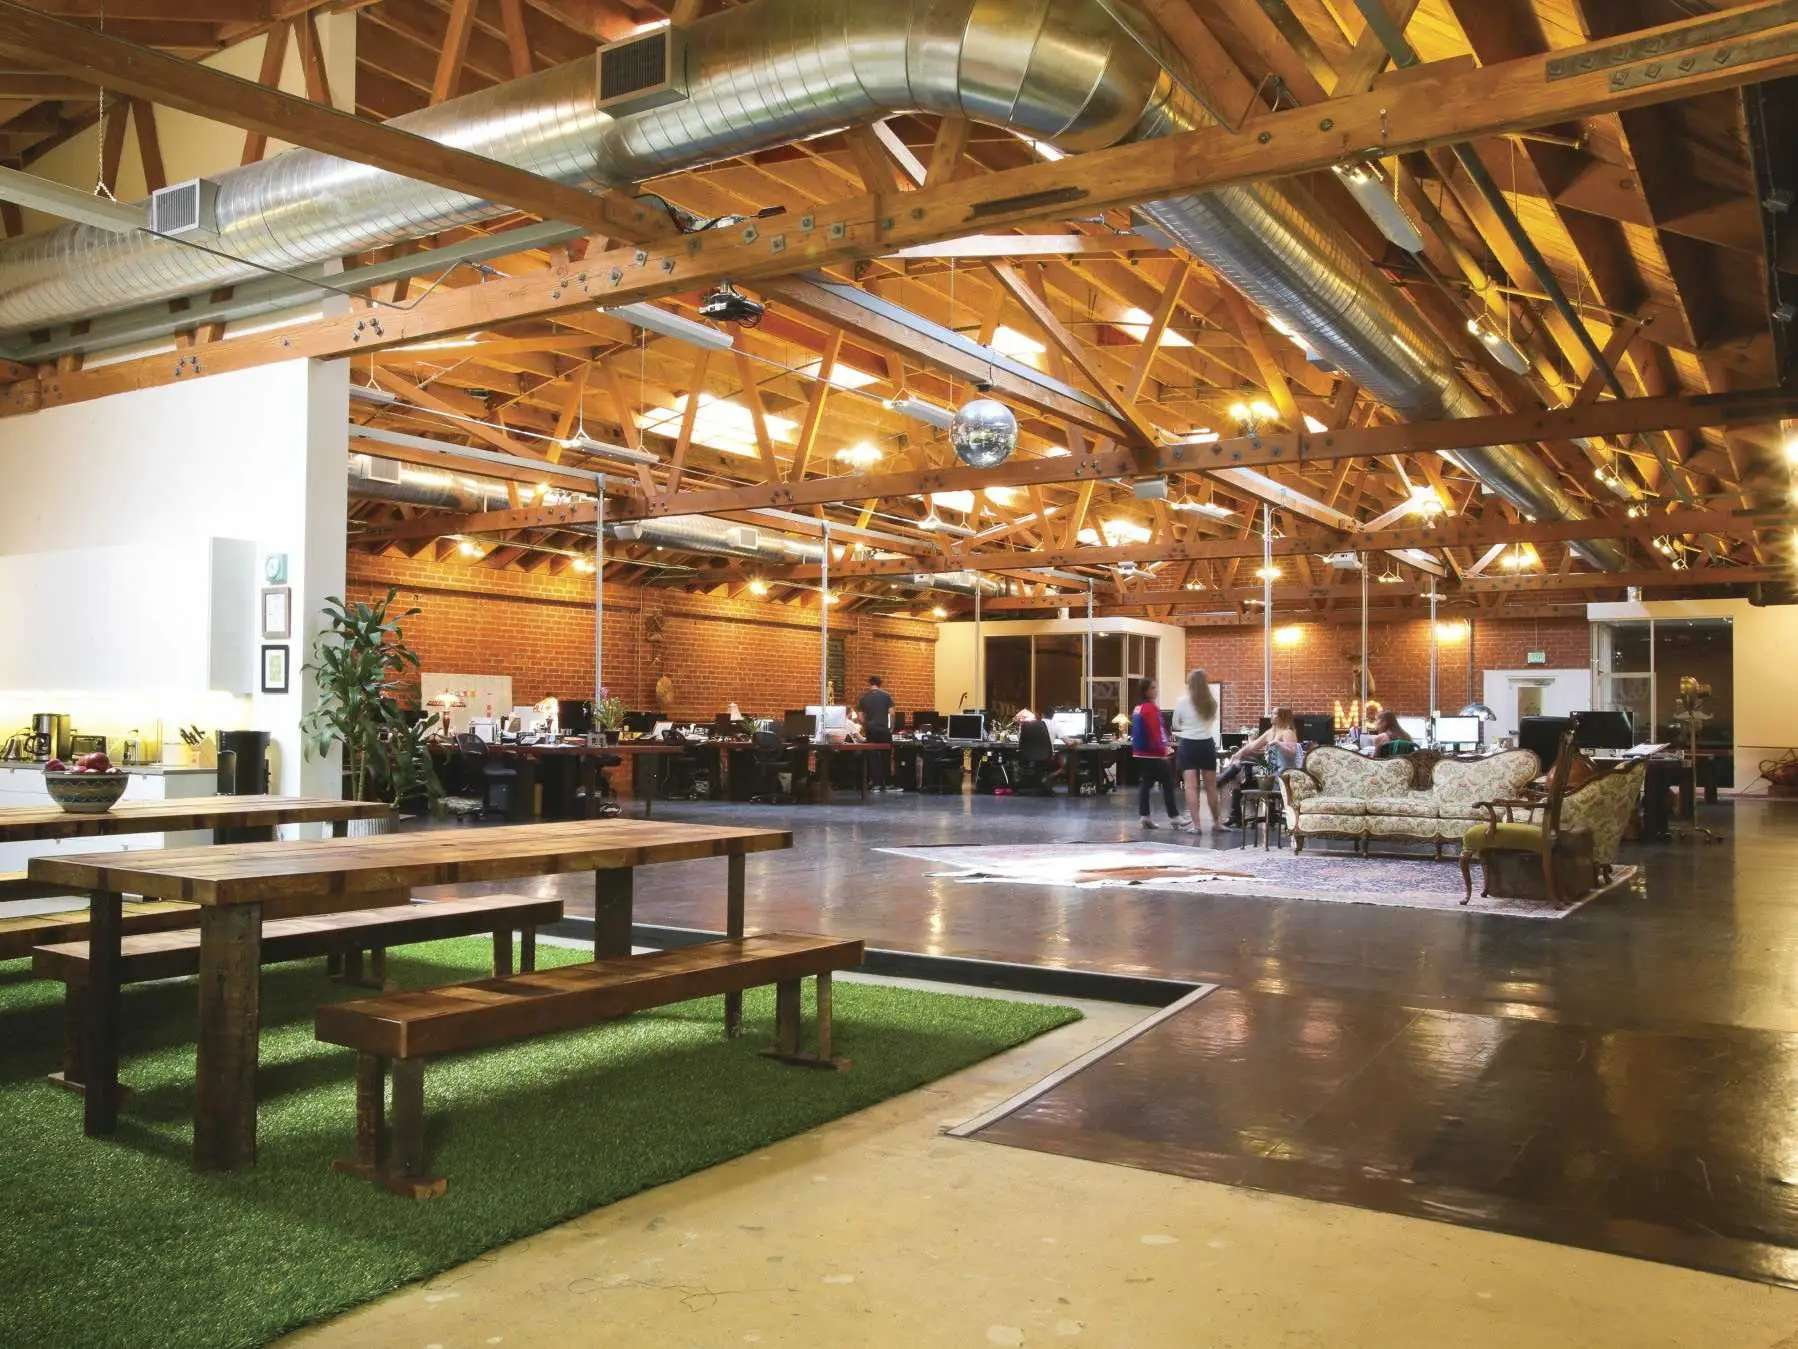 interesting office spaces commercial the movember foundation renovated hollywood legend debbie reynolds dance studio into sleek office space 31 most interesting offices youve ever seen financial post